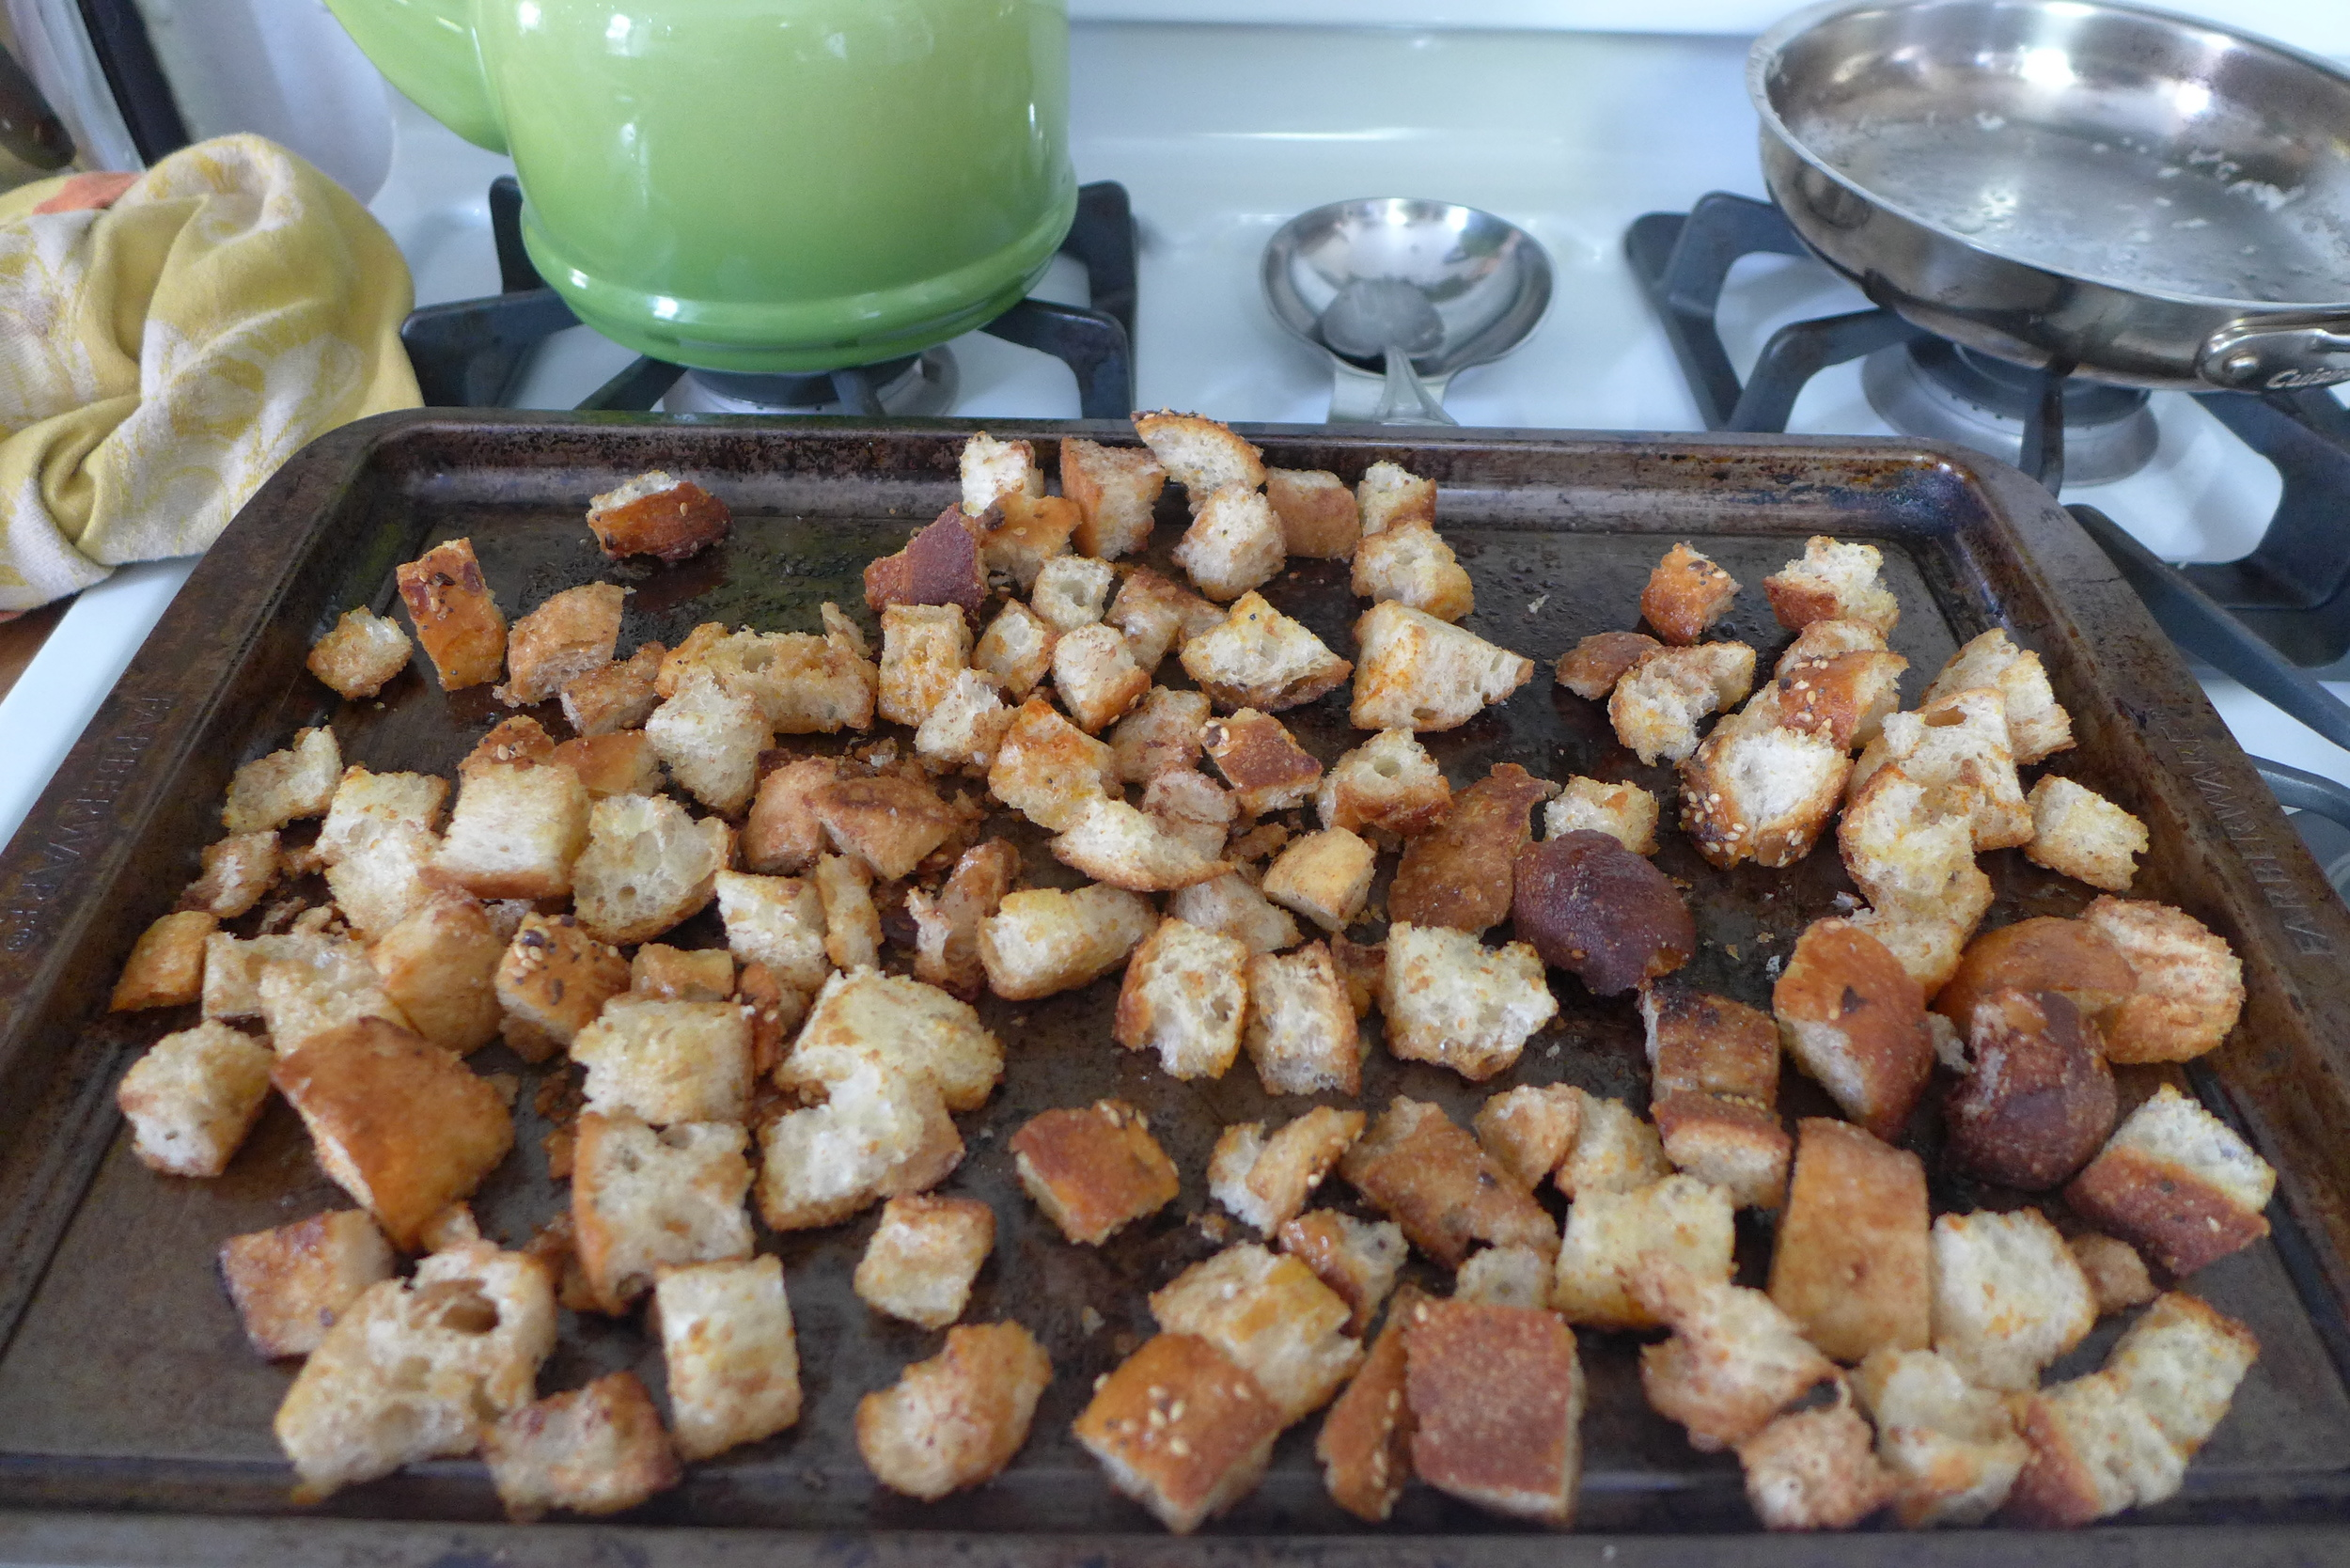 Bread cubes, after baked.